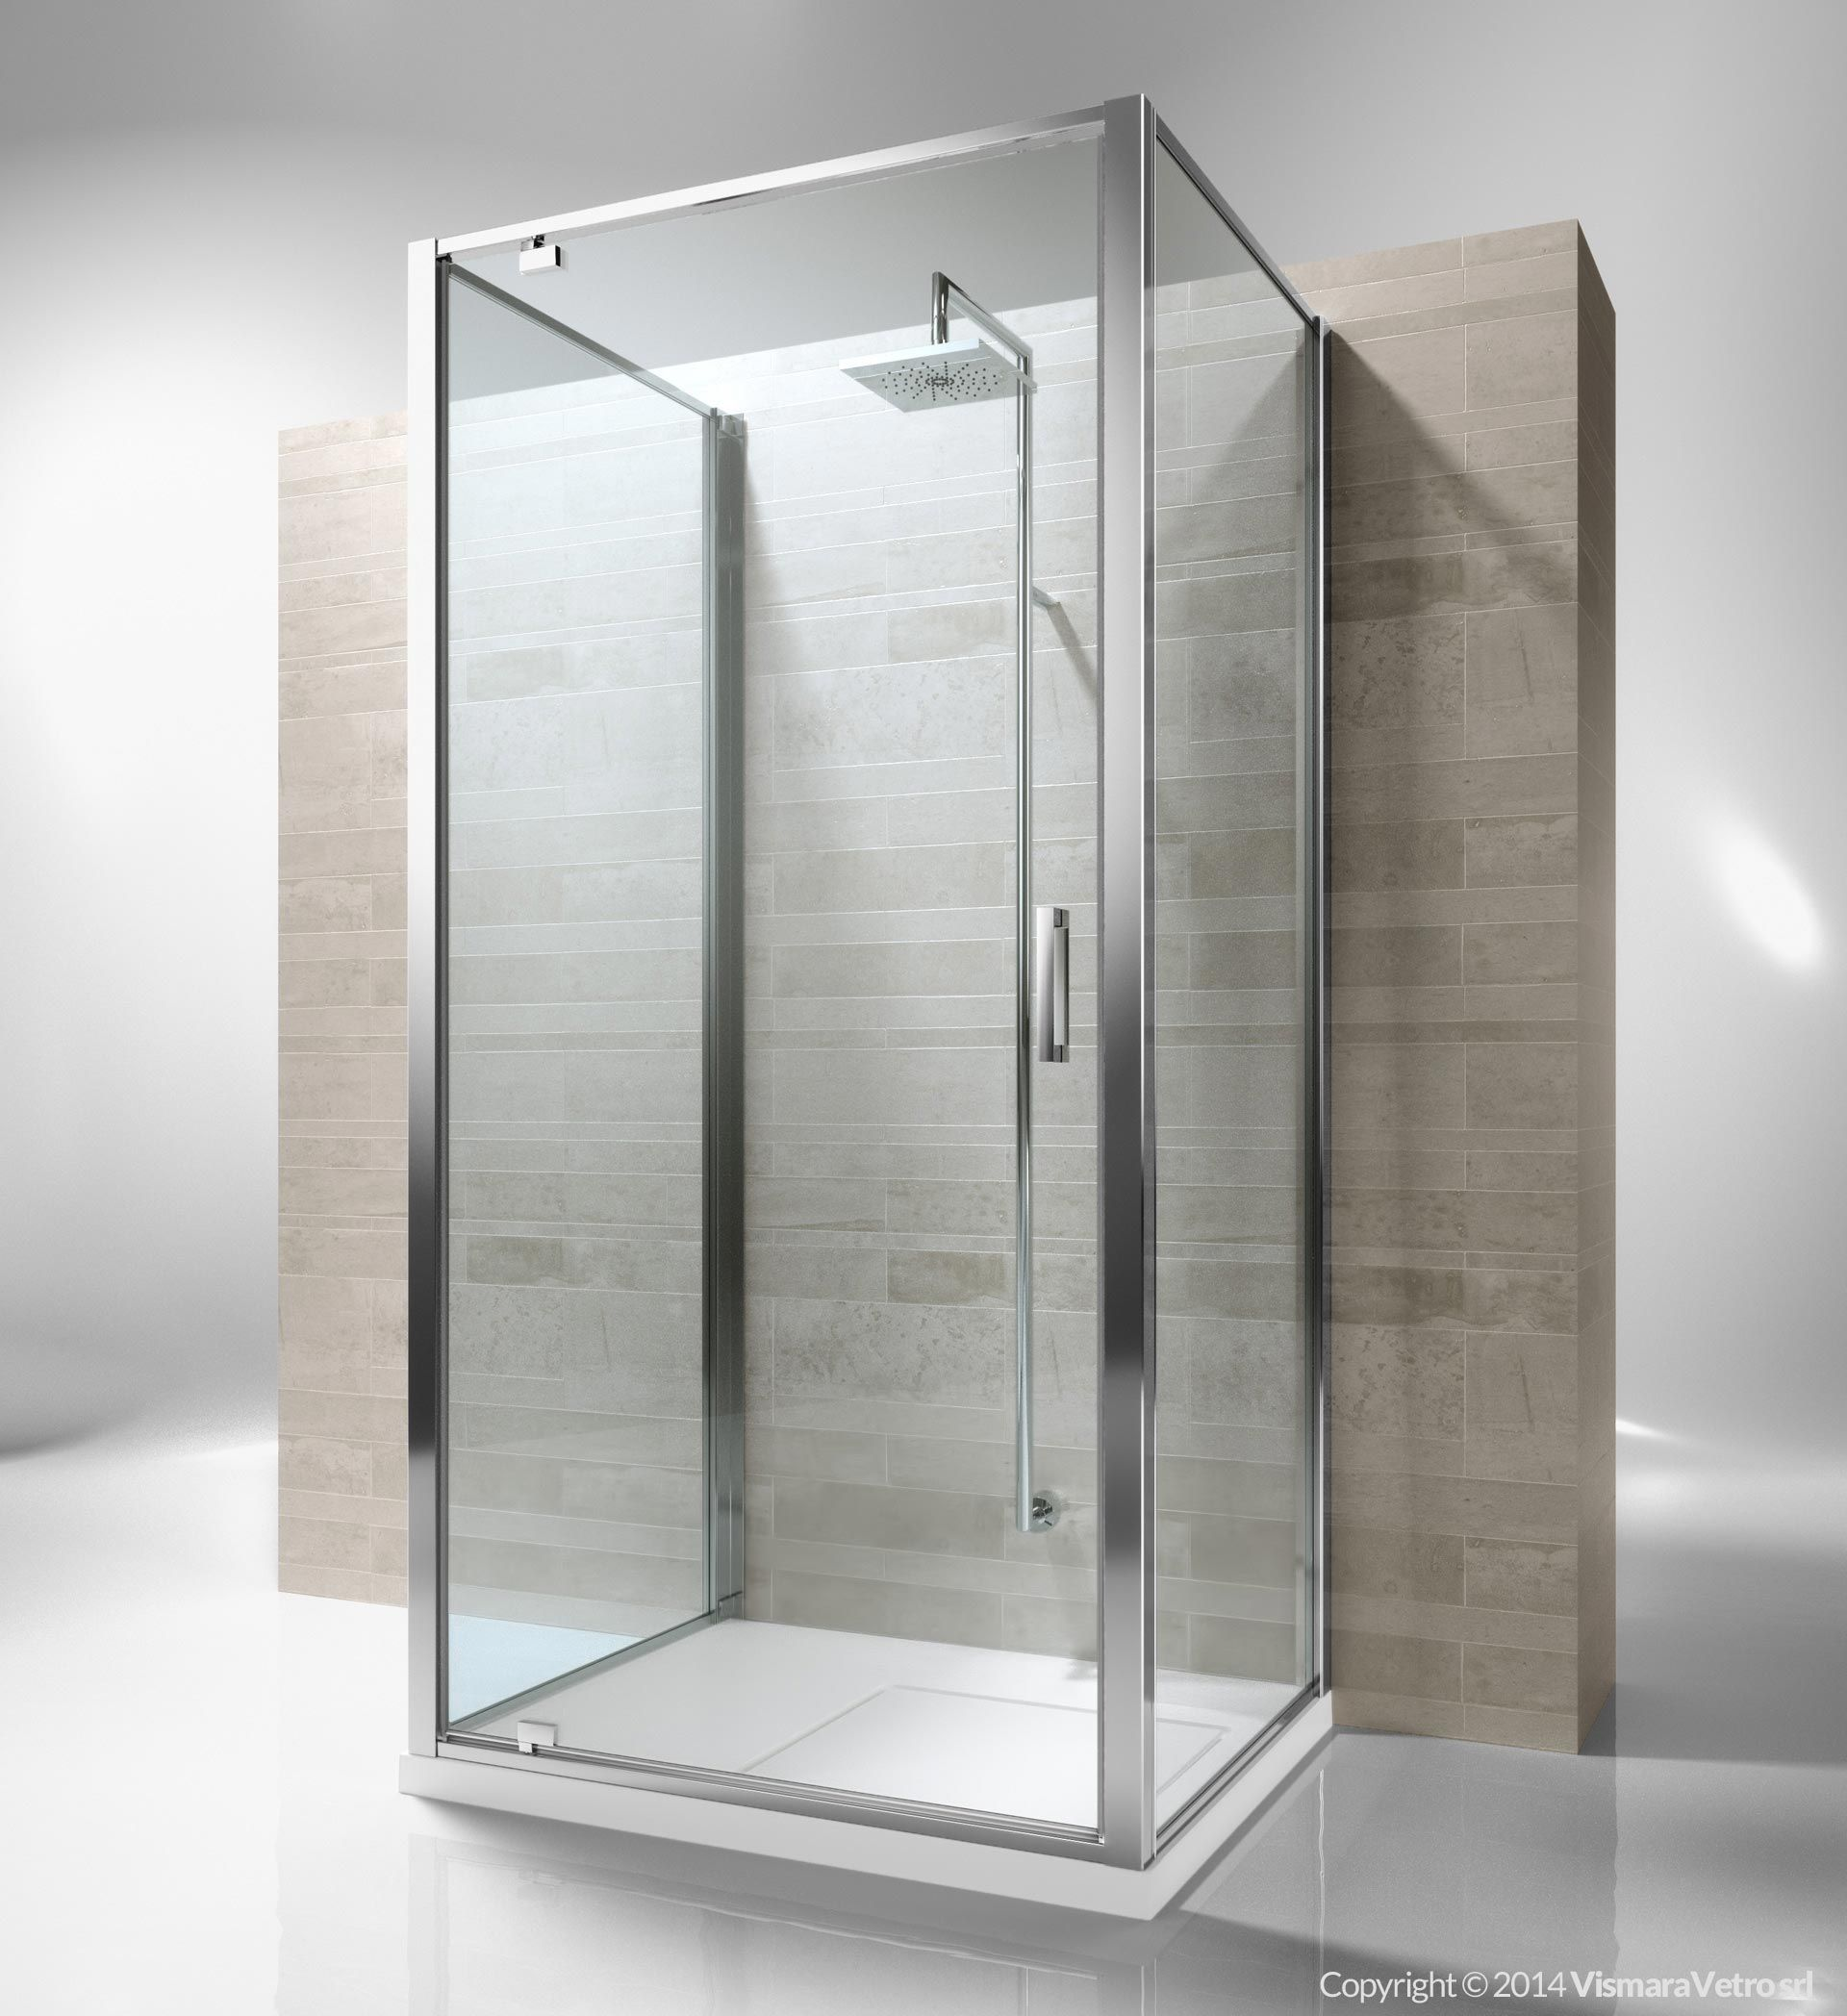 Framed 3 sided shower enclosure with pivoting door. Reversible and ...